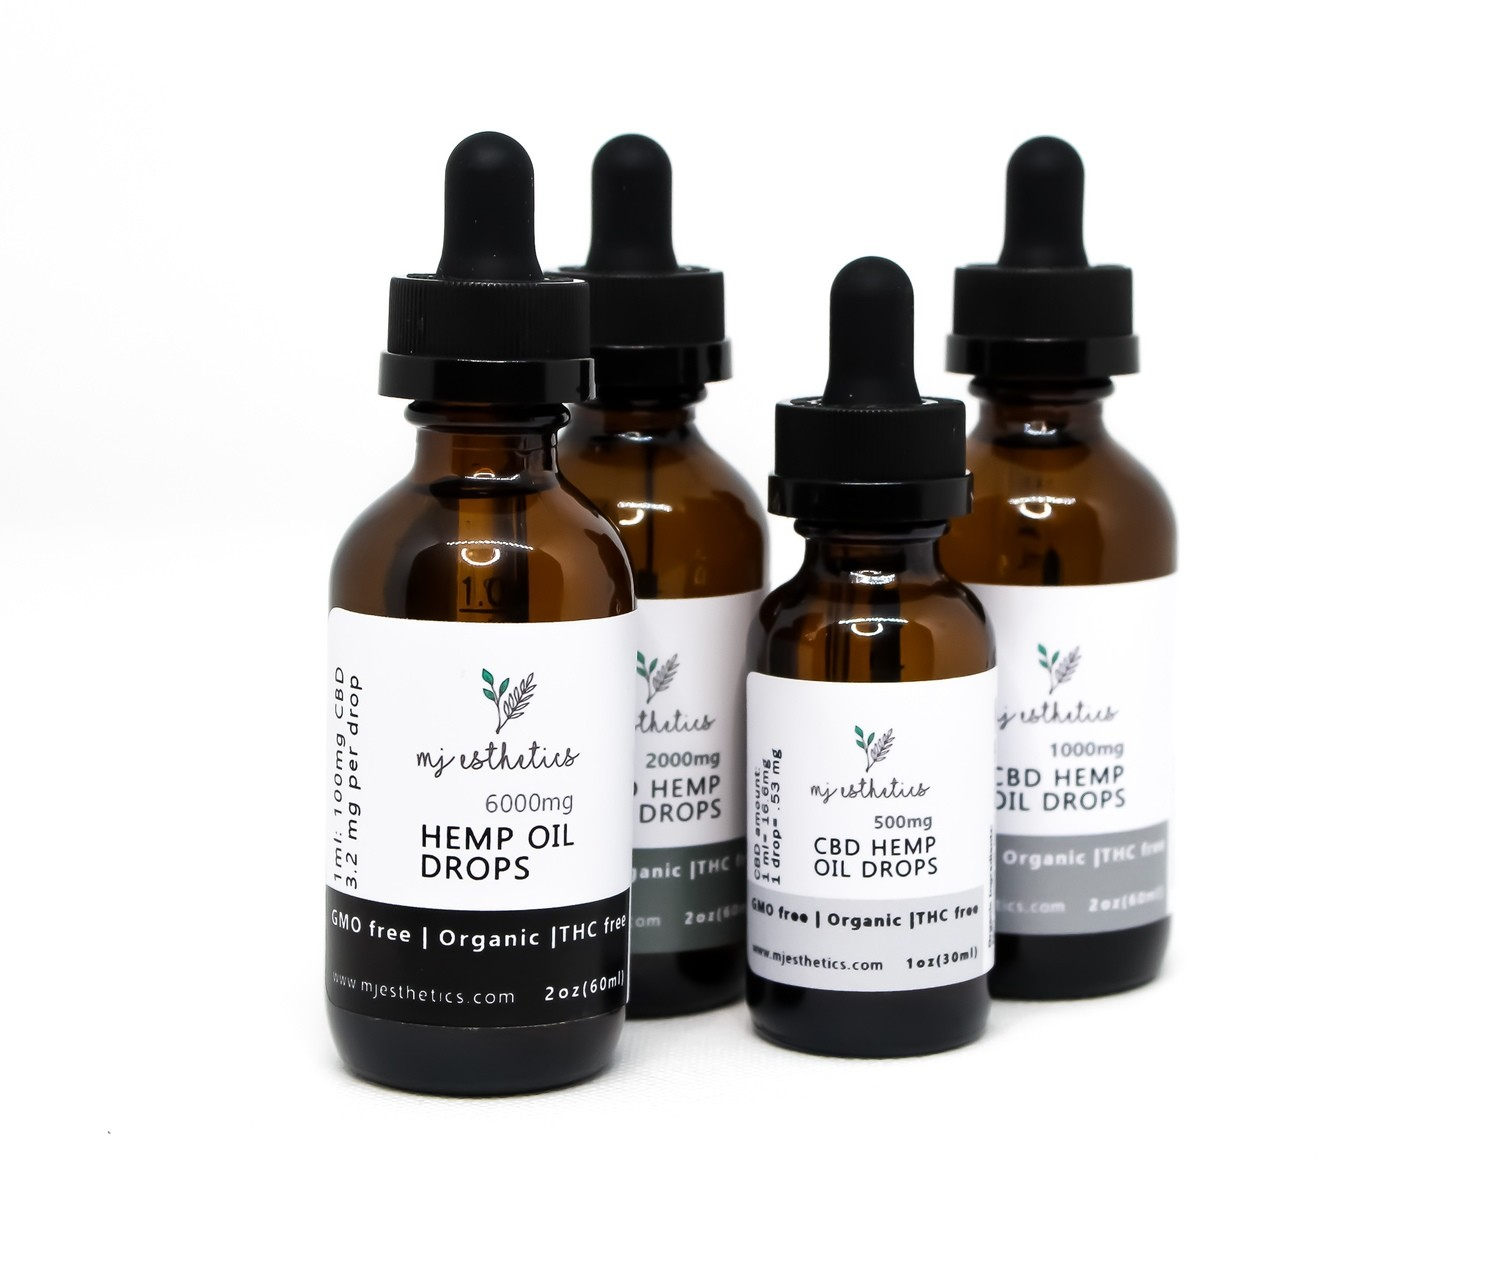 MJ Estetics CBD Oil Drops 500mg - Isolate (THC-Free)